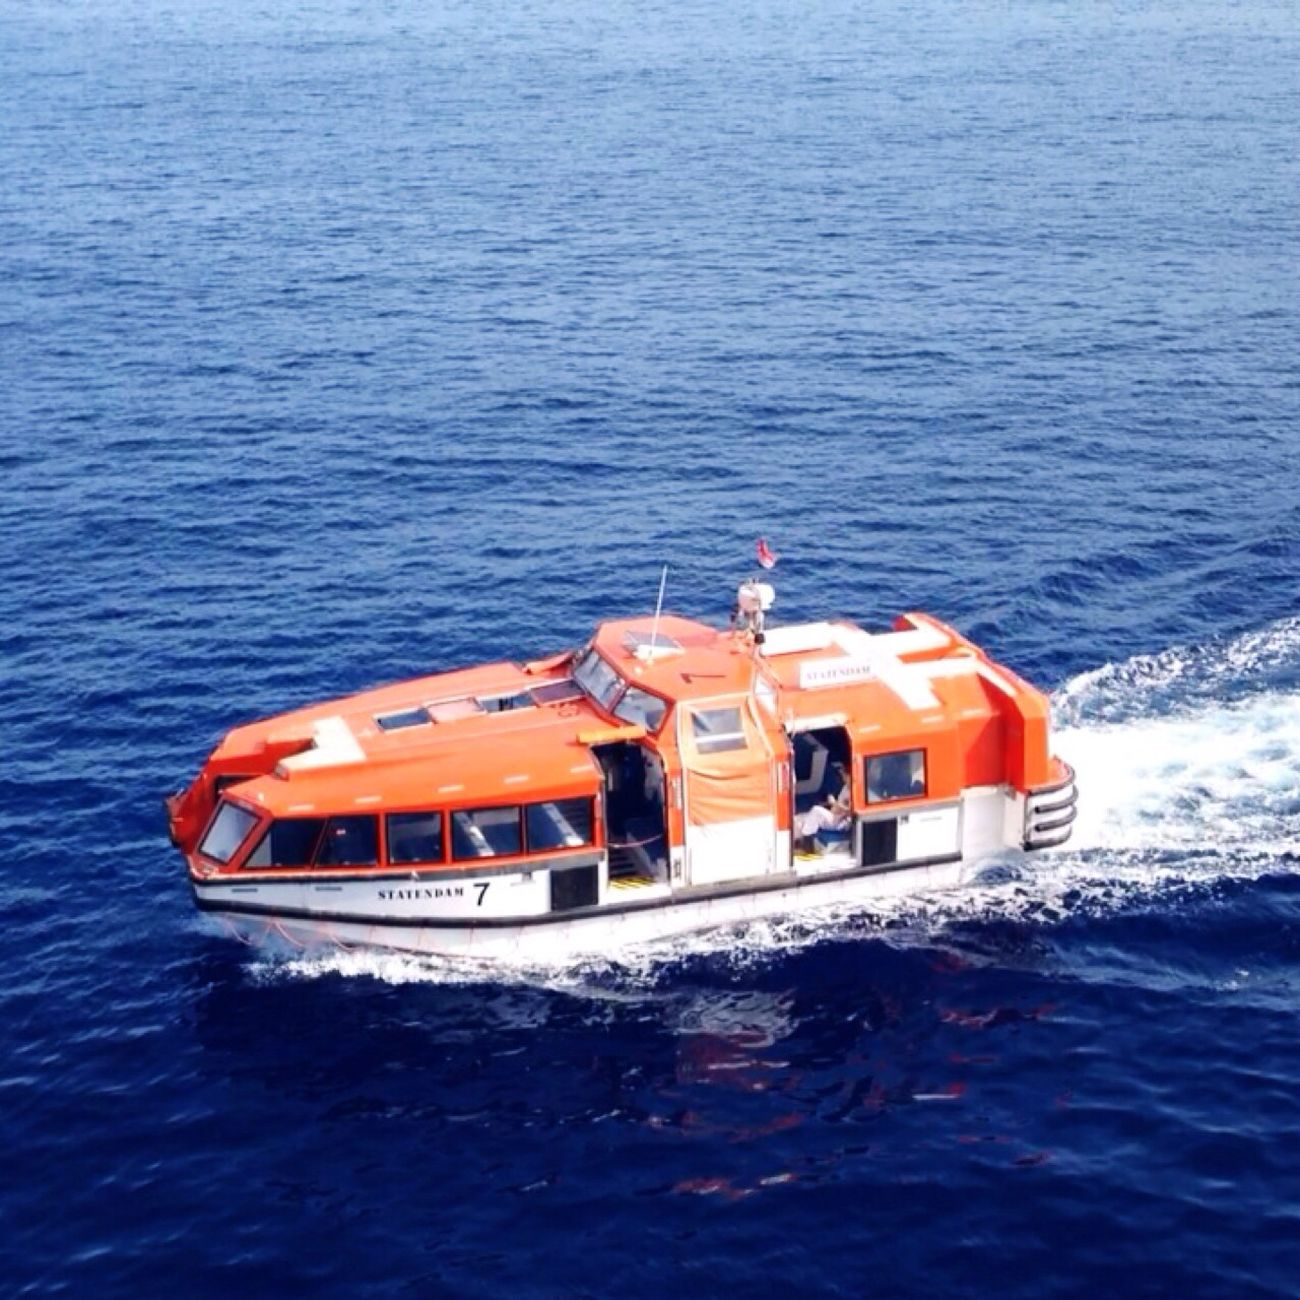 Tender Orange Cruise Lifeboat Nautical